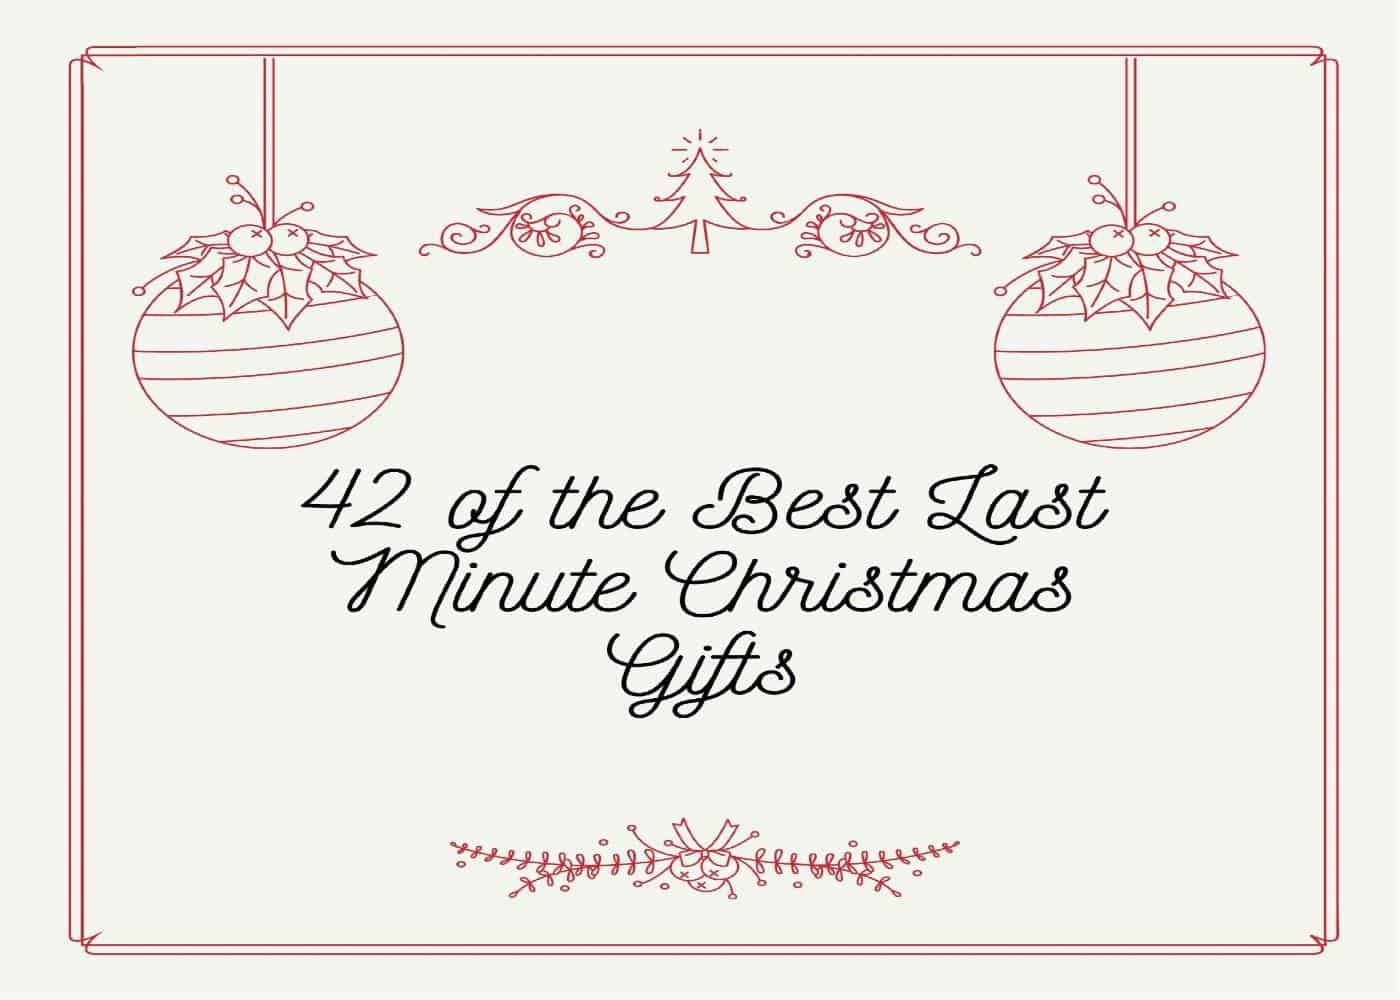 42 of the Best Last Minute Christmas Gifts 2021